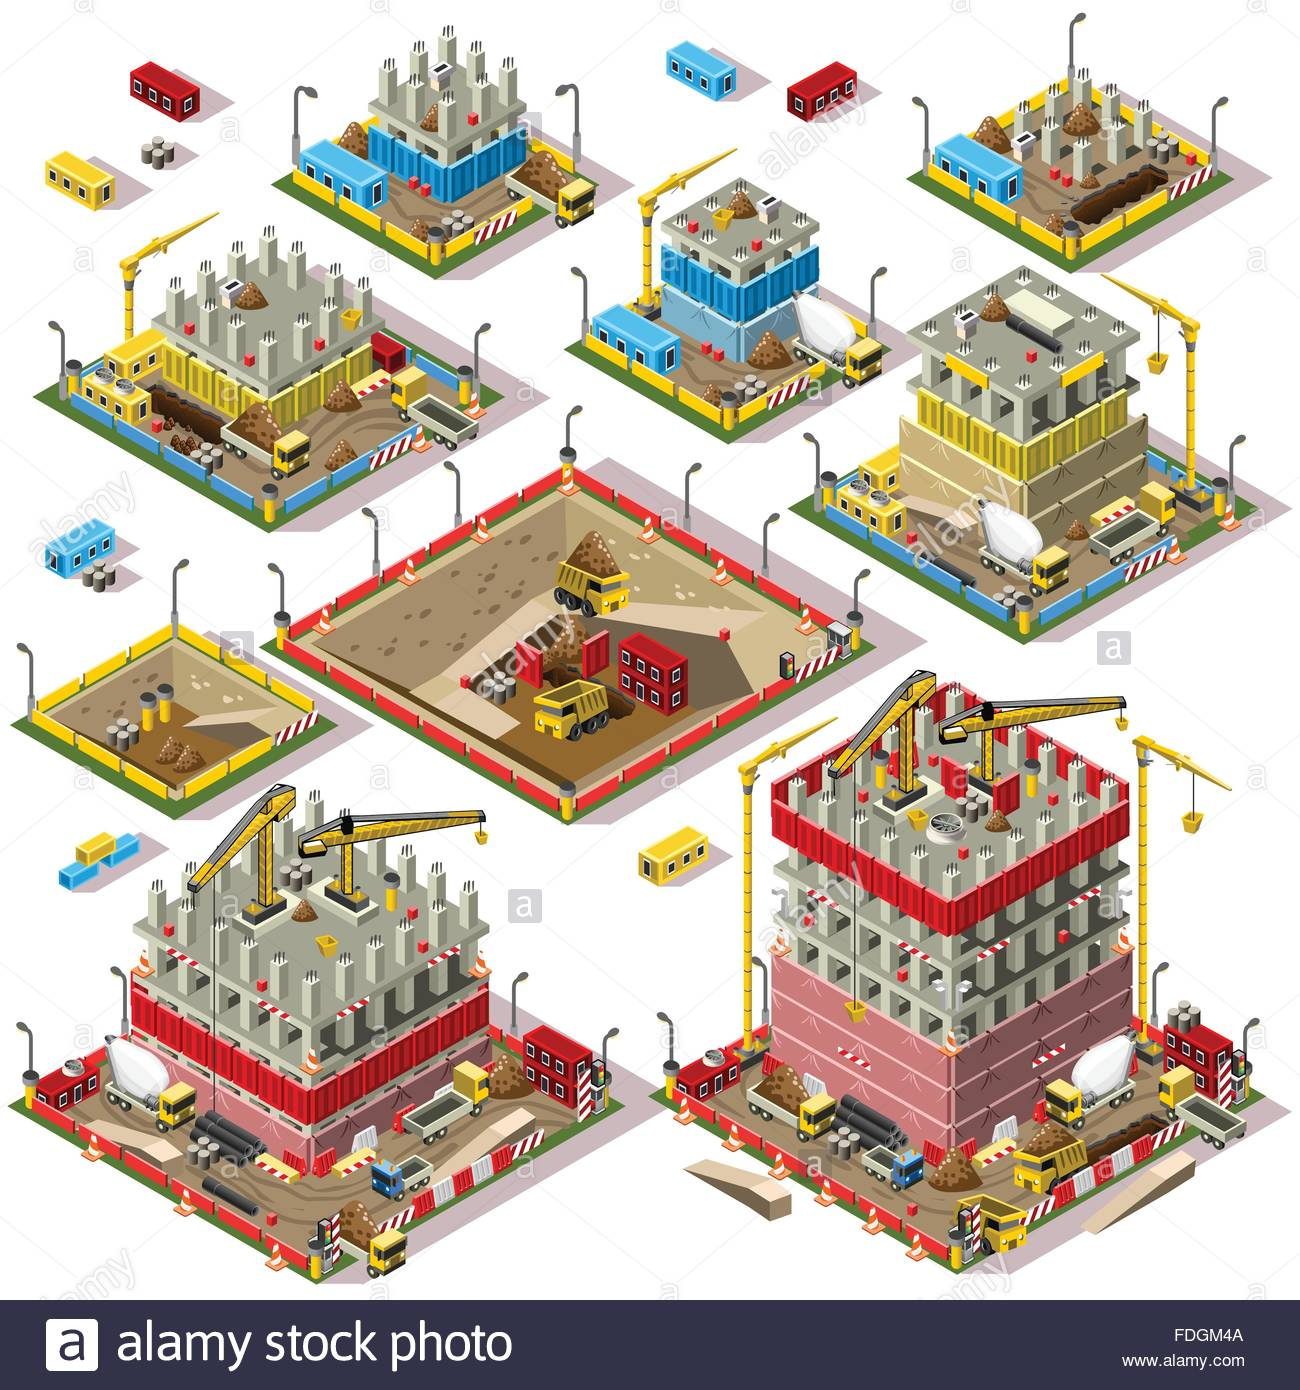 Flat 3d isometric buildings construction site city map 3d drawing website